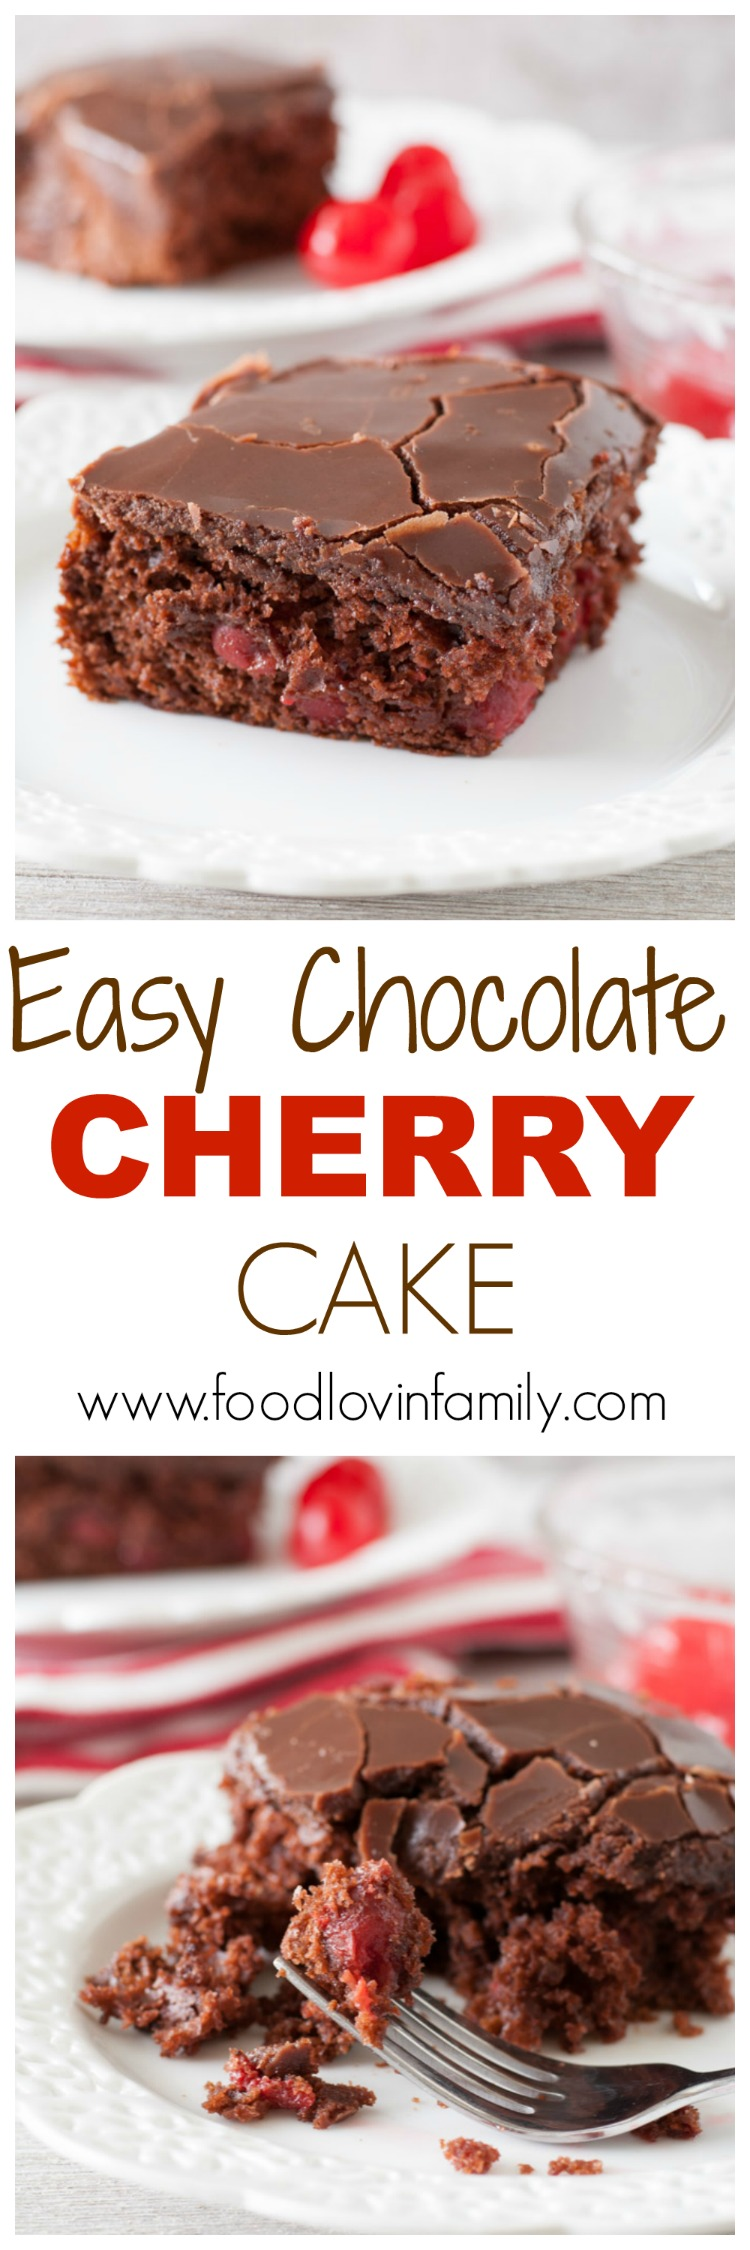 Easy Chocolate Cherry Cake - Food Lovin Family